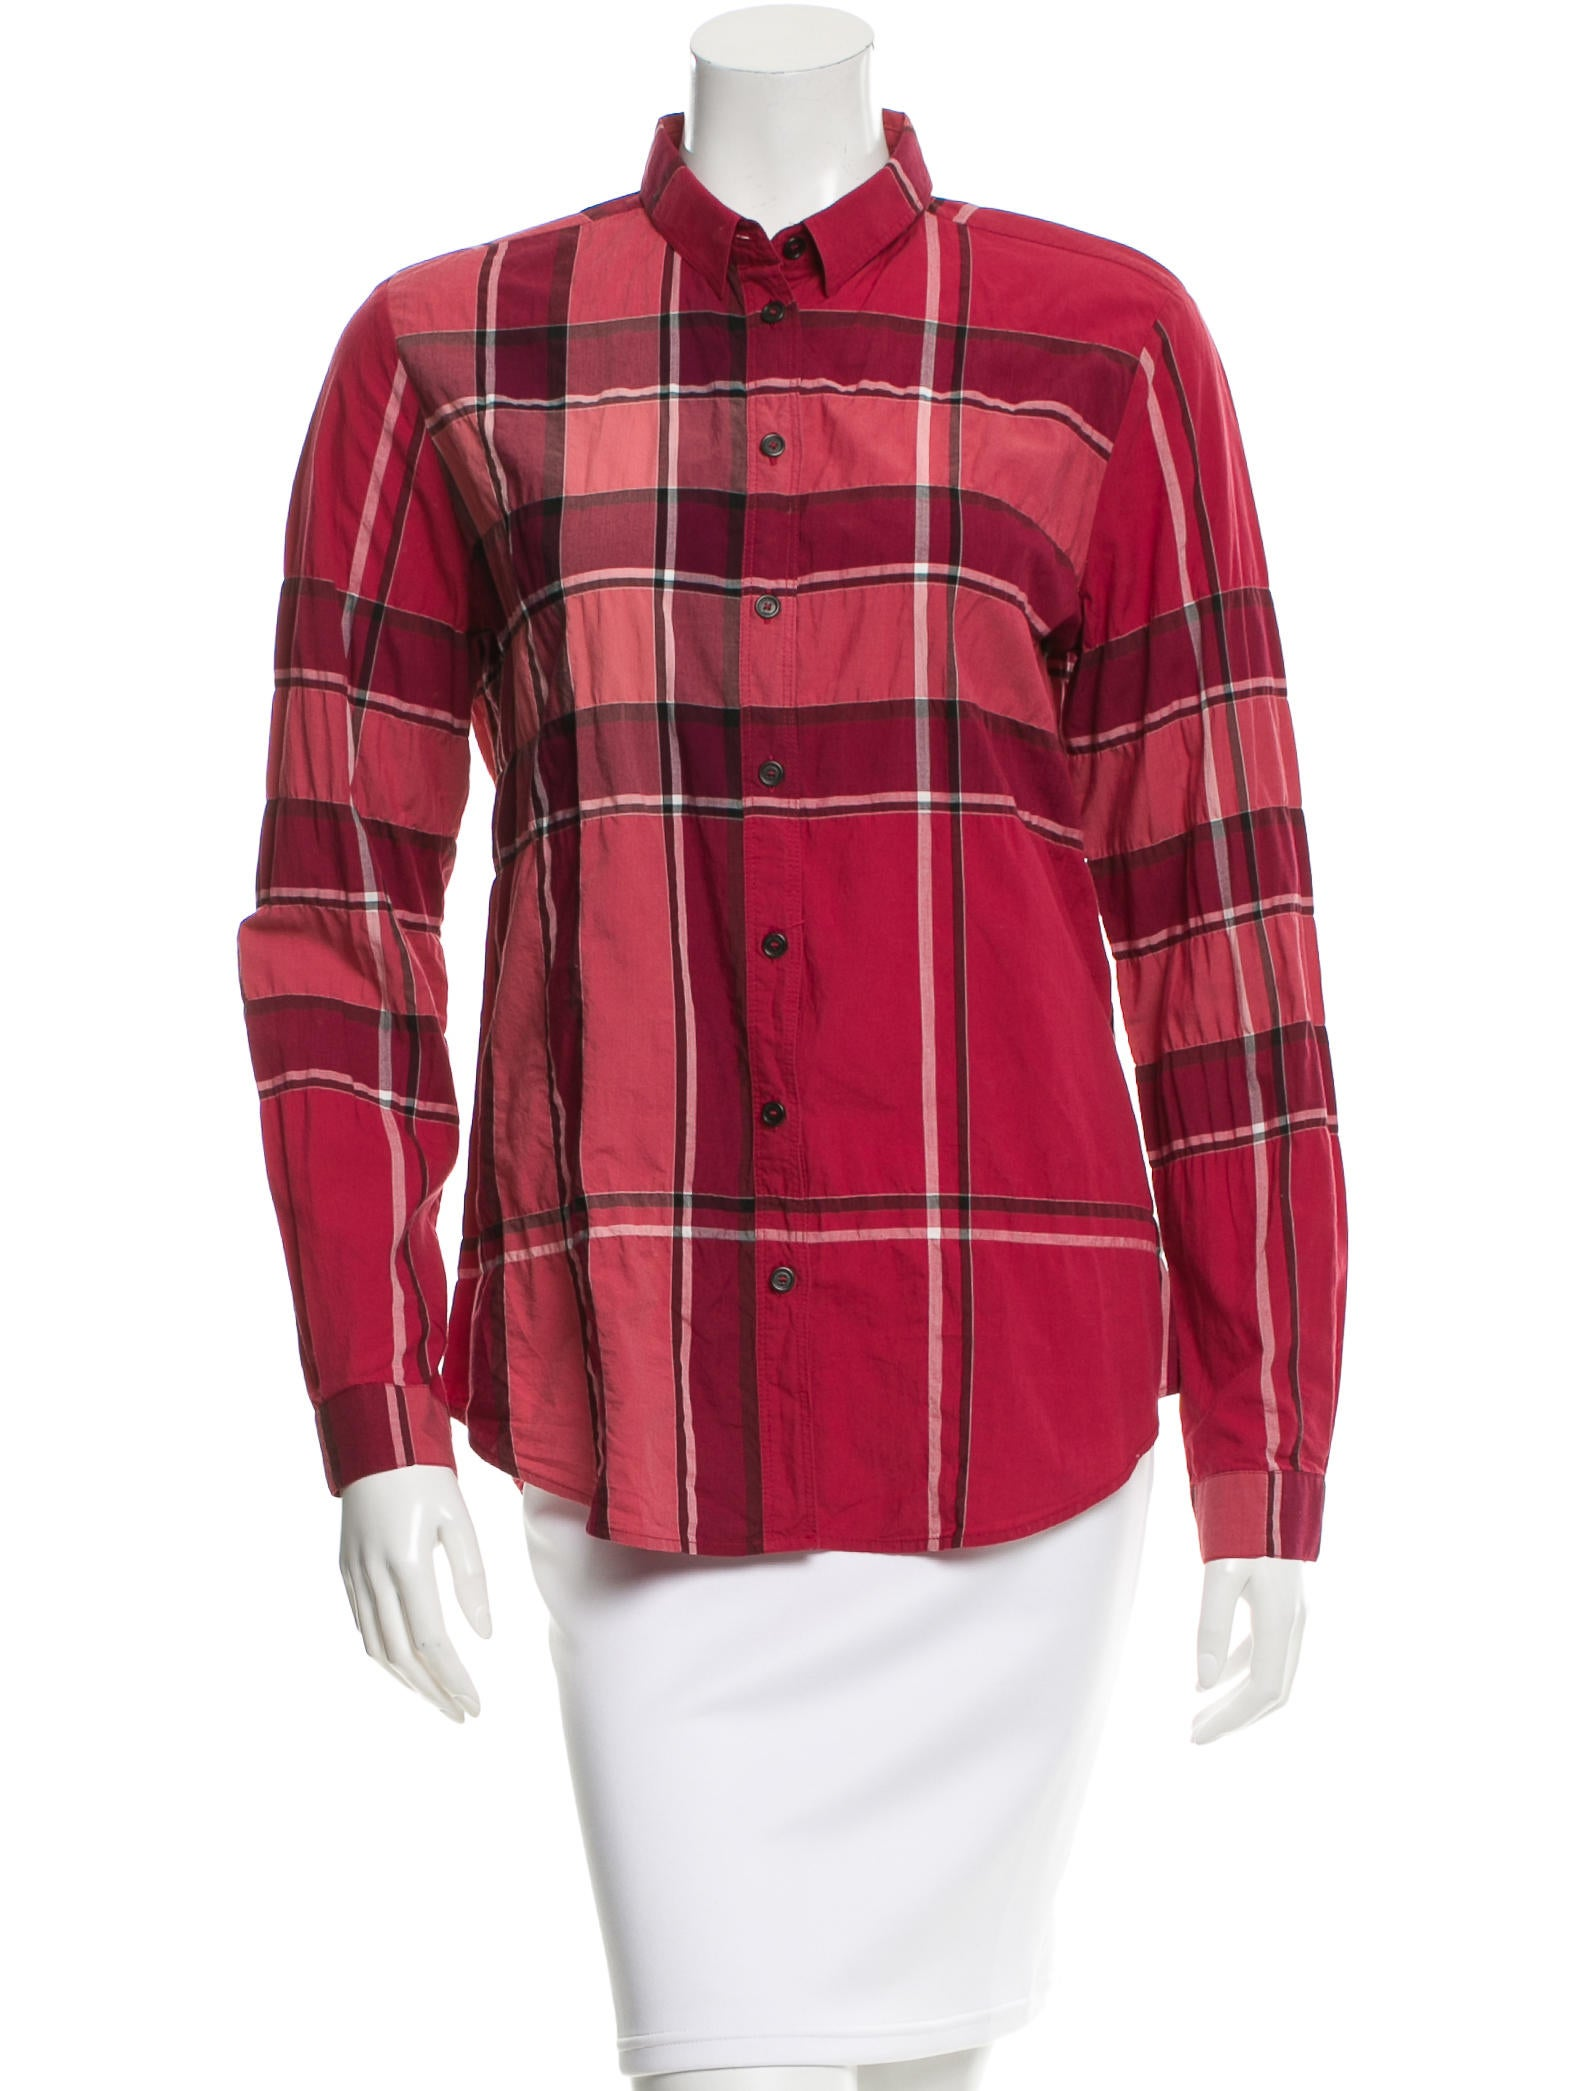 Burberry brit plaid button up top clothing bbr24125 for Burberry brit plaid shirt